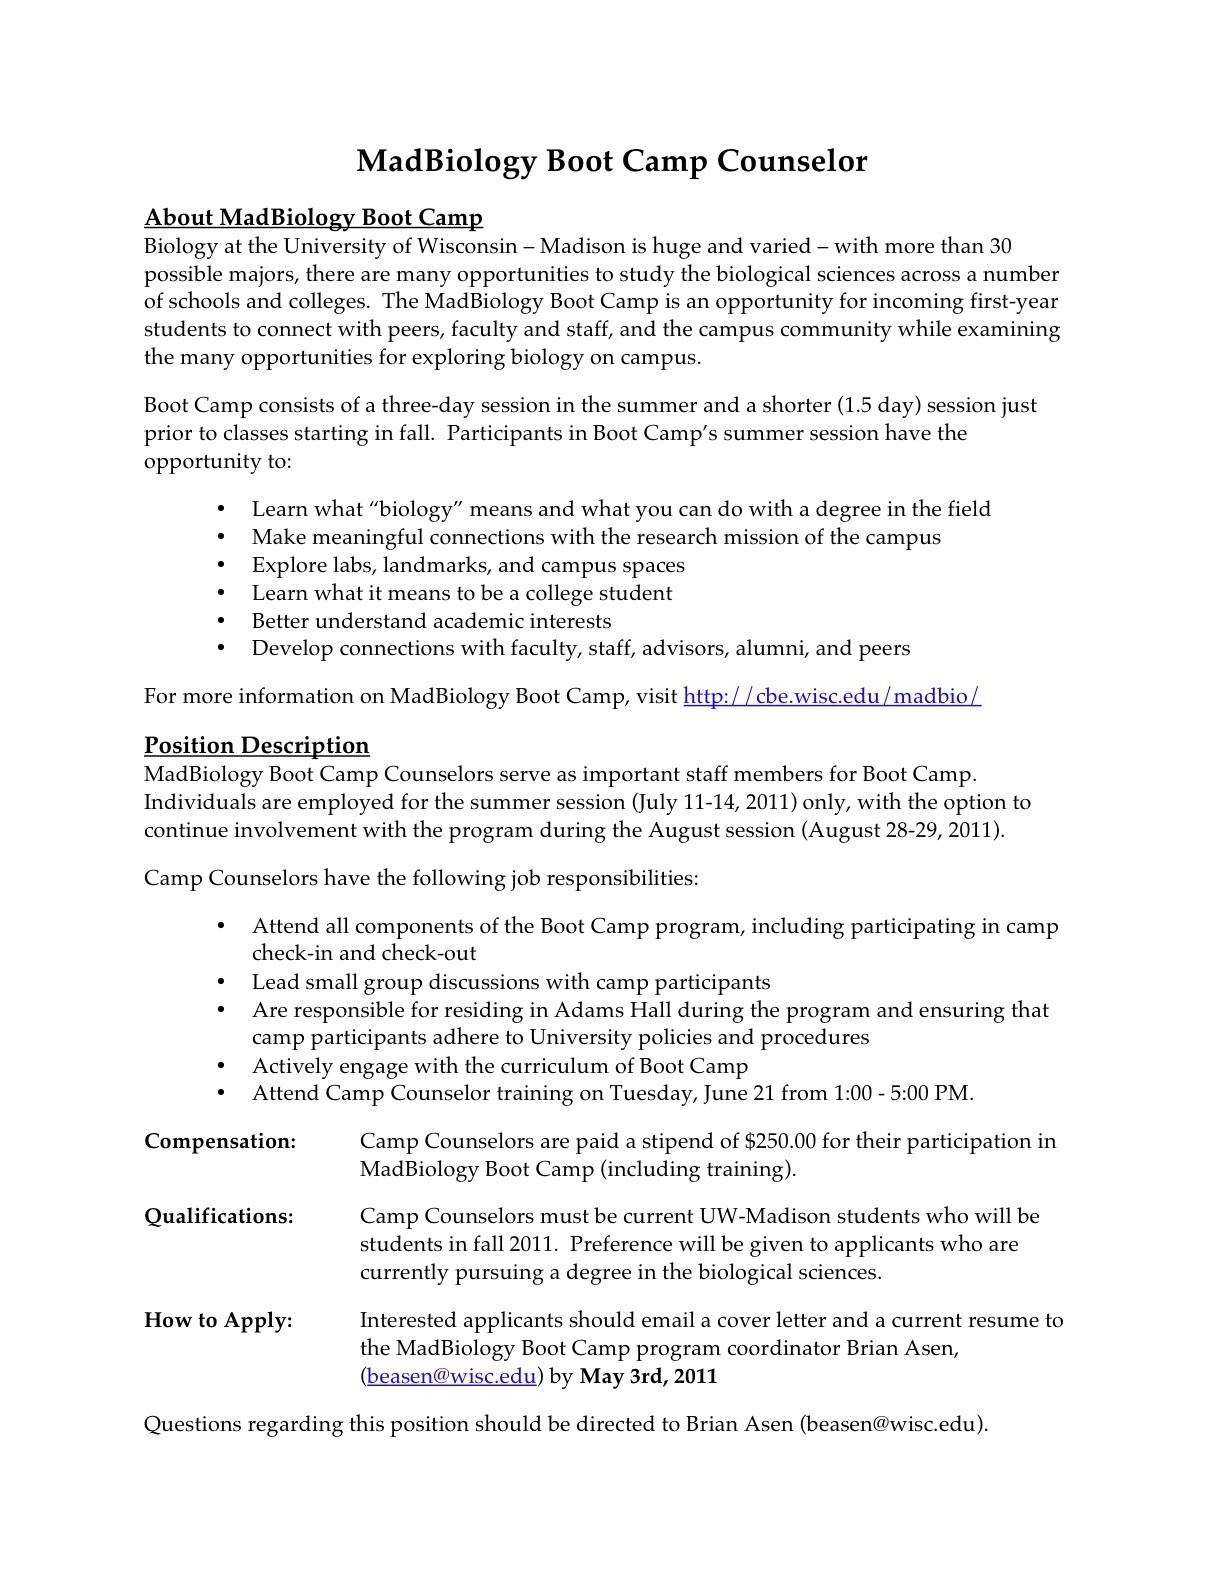 Summer Counselor Resume - Camp Counselor Resume Inspirational Resume Examples for Youth